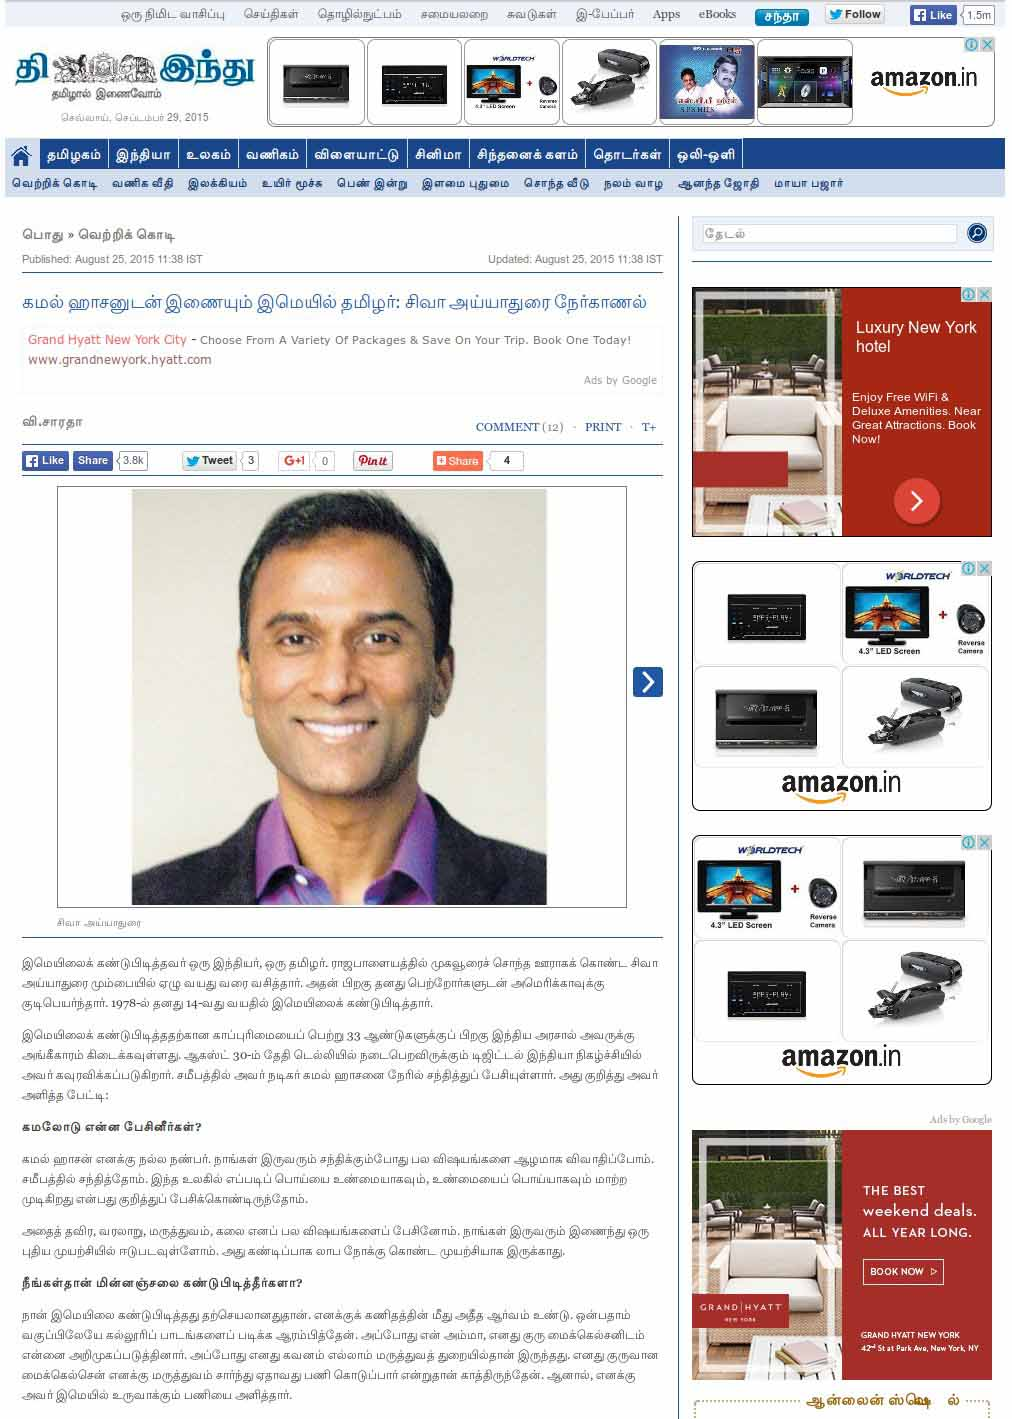 Interview With Email Tamilian, Shiva Ayyadurai